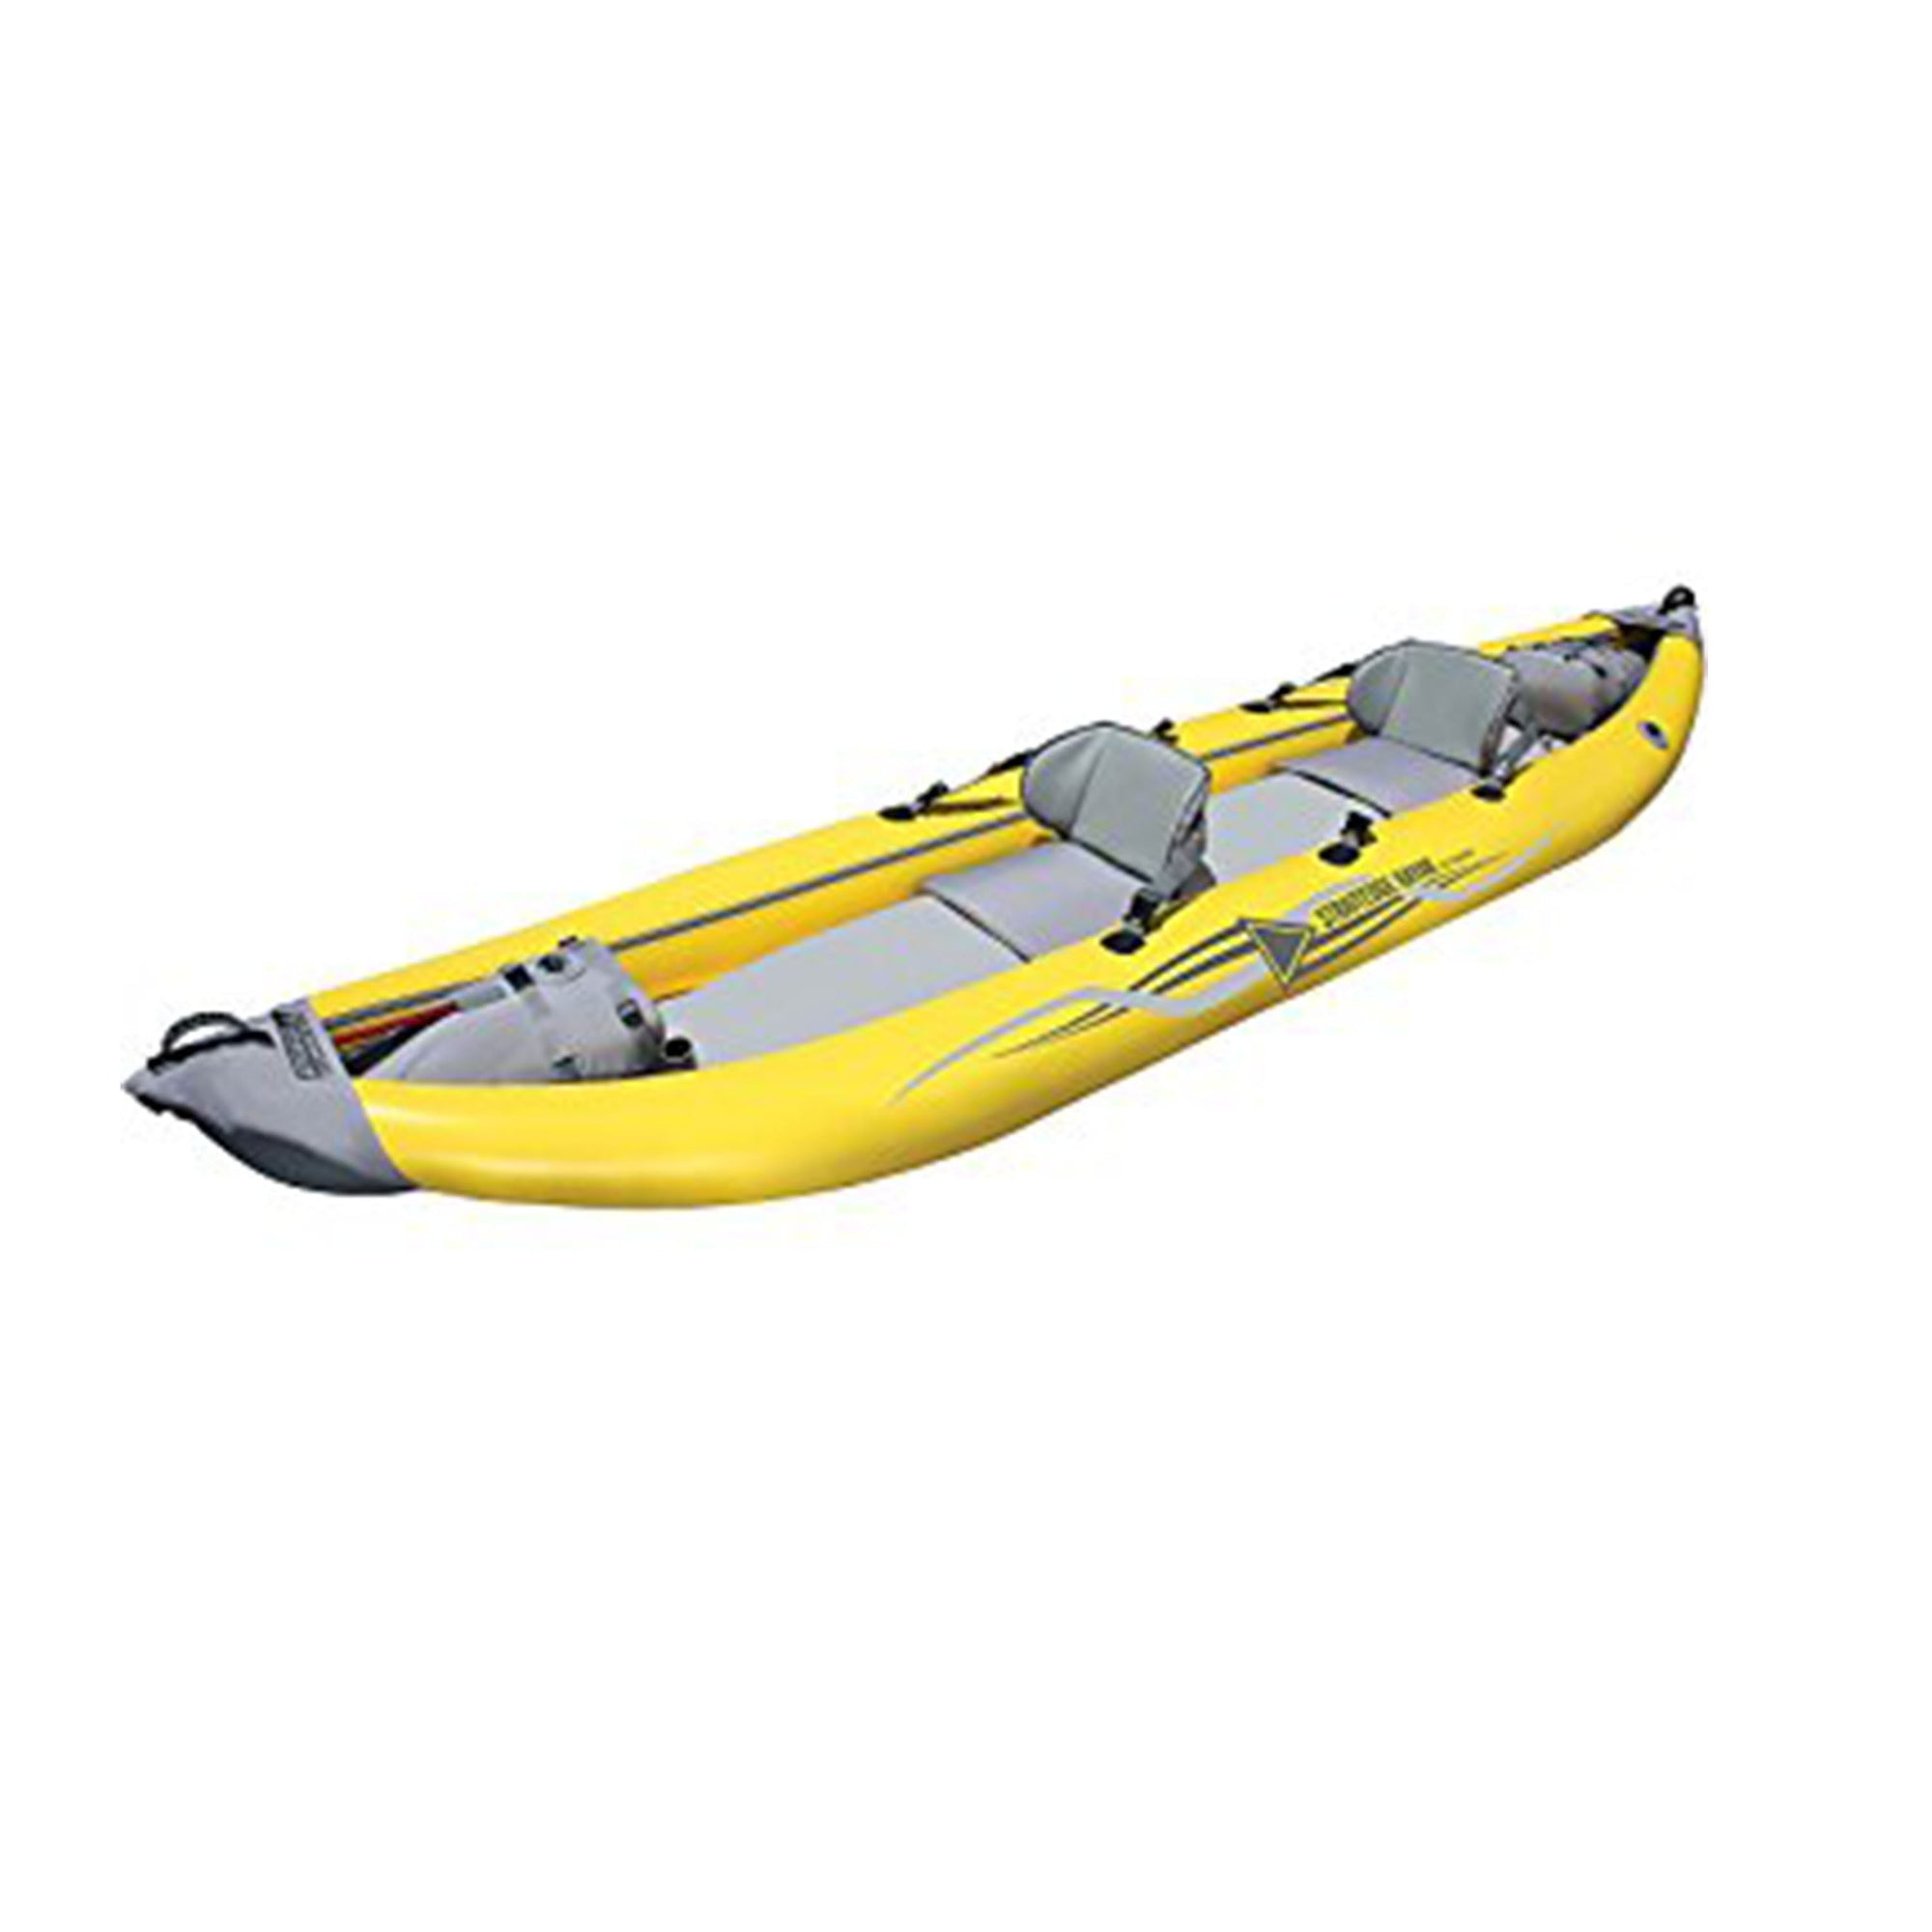 Advanced Elements StraitEdge2 Inflatable Kayak - Kayak Creek